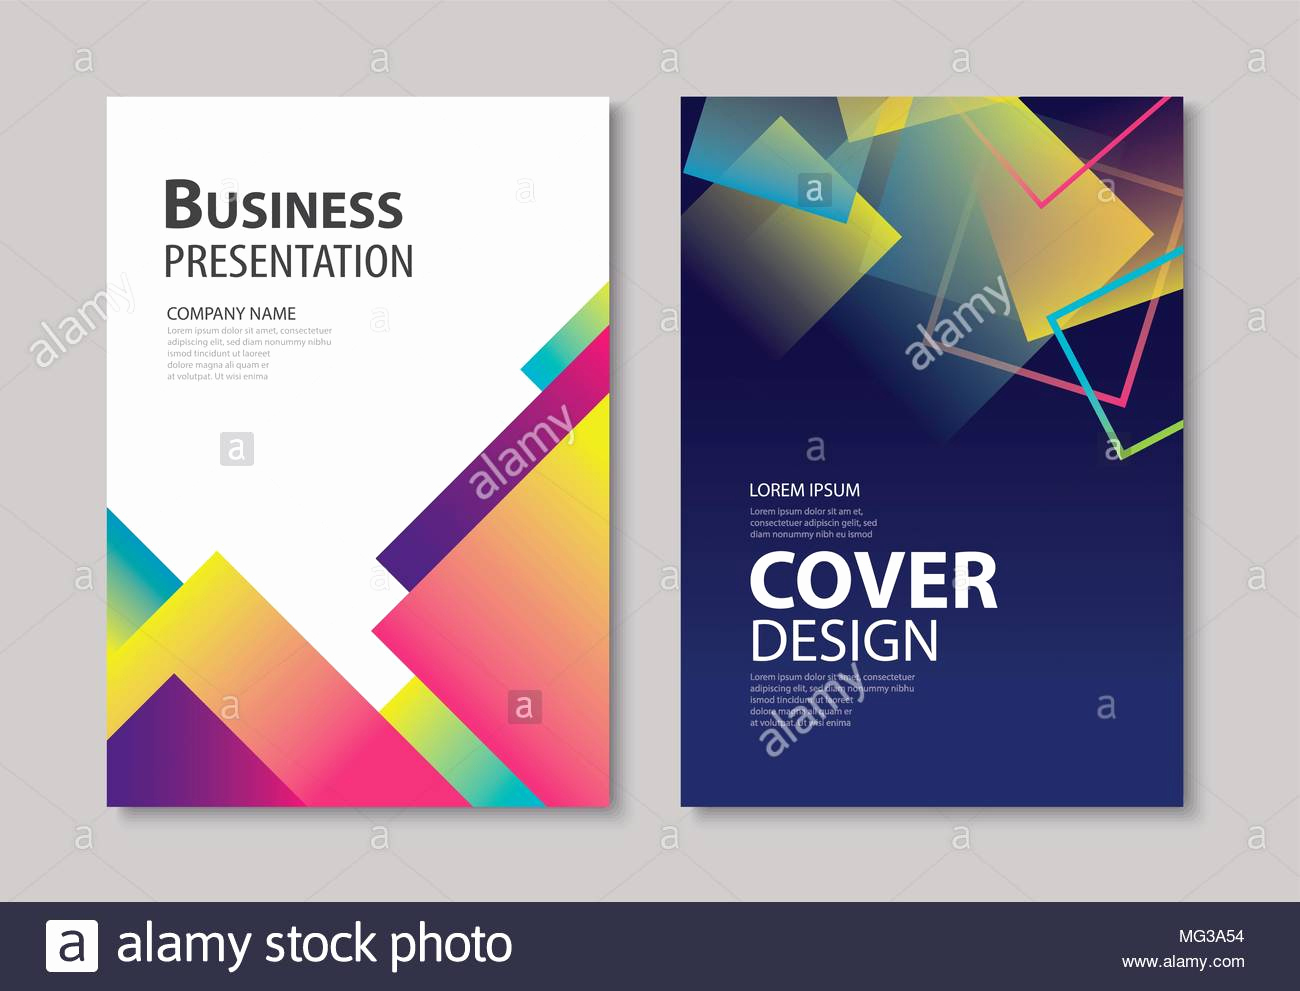 Book Cover Design Template Inspirational Abstract Gra Nt Modern Geometric Flyer and Poster Design